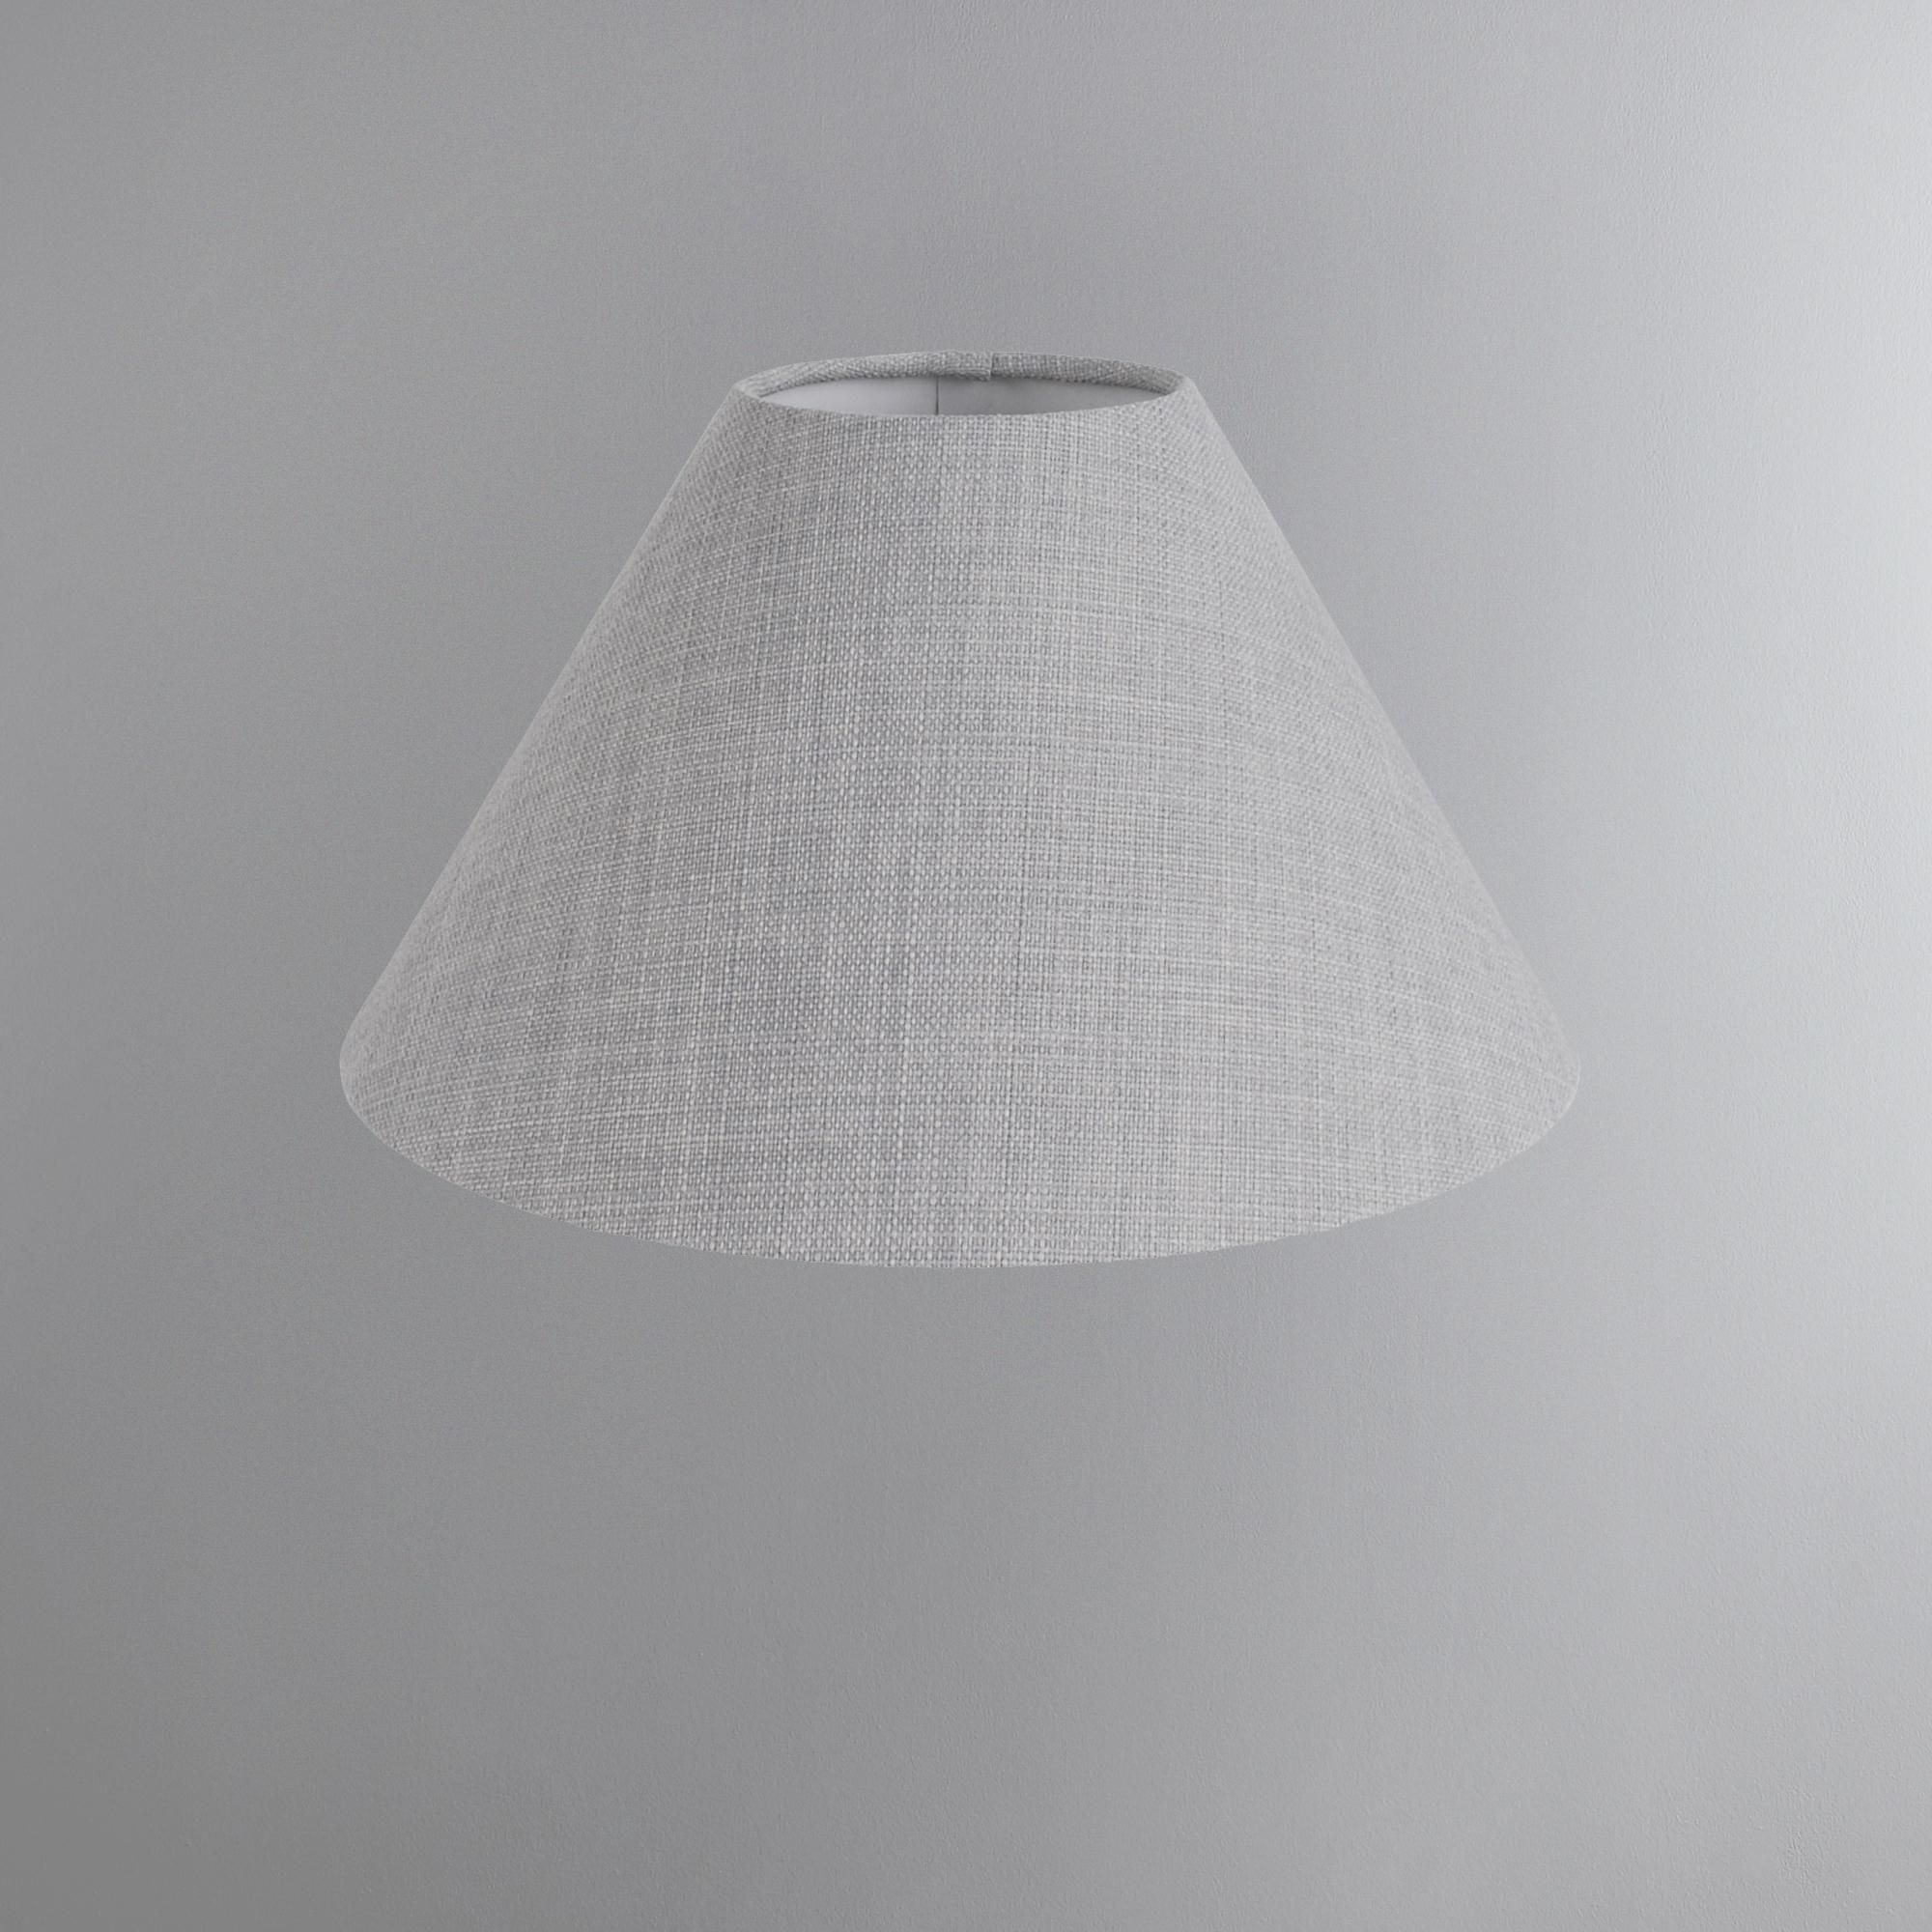 Made To Order 40cm Tapered Shade In 2020 Fabric Lampshade Light Shades Lamp Shades